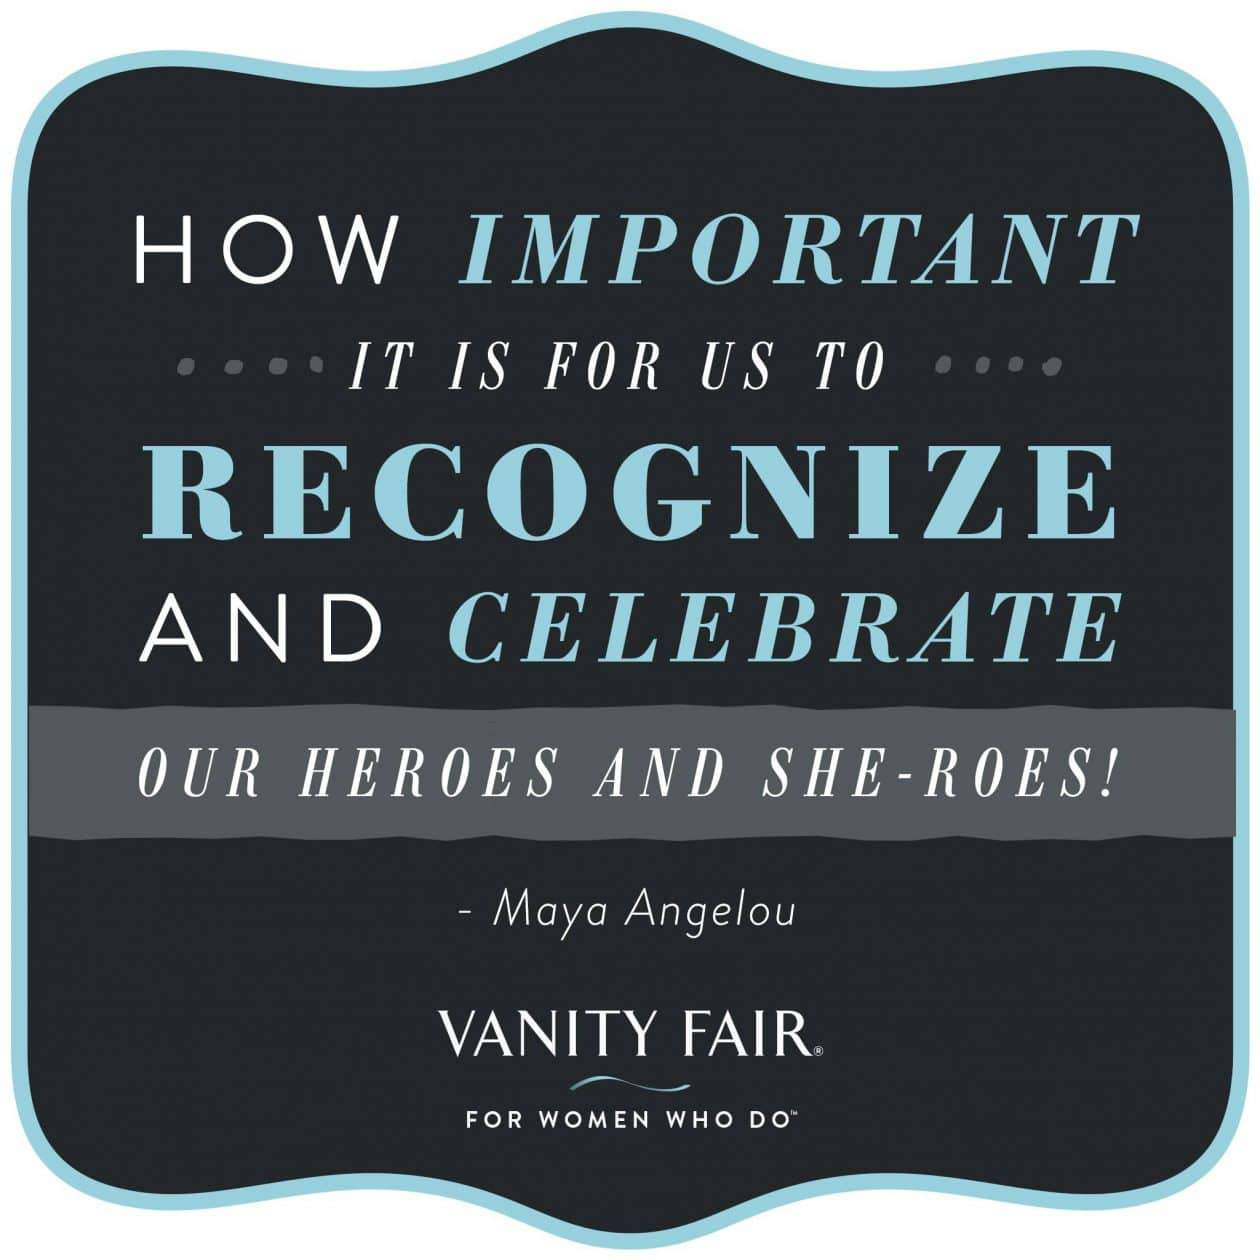 Vanity Fair for women who do campaign